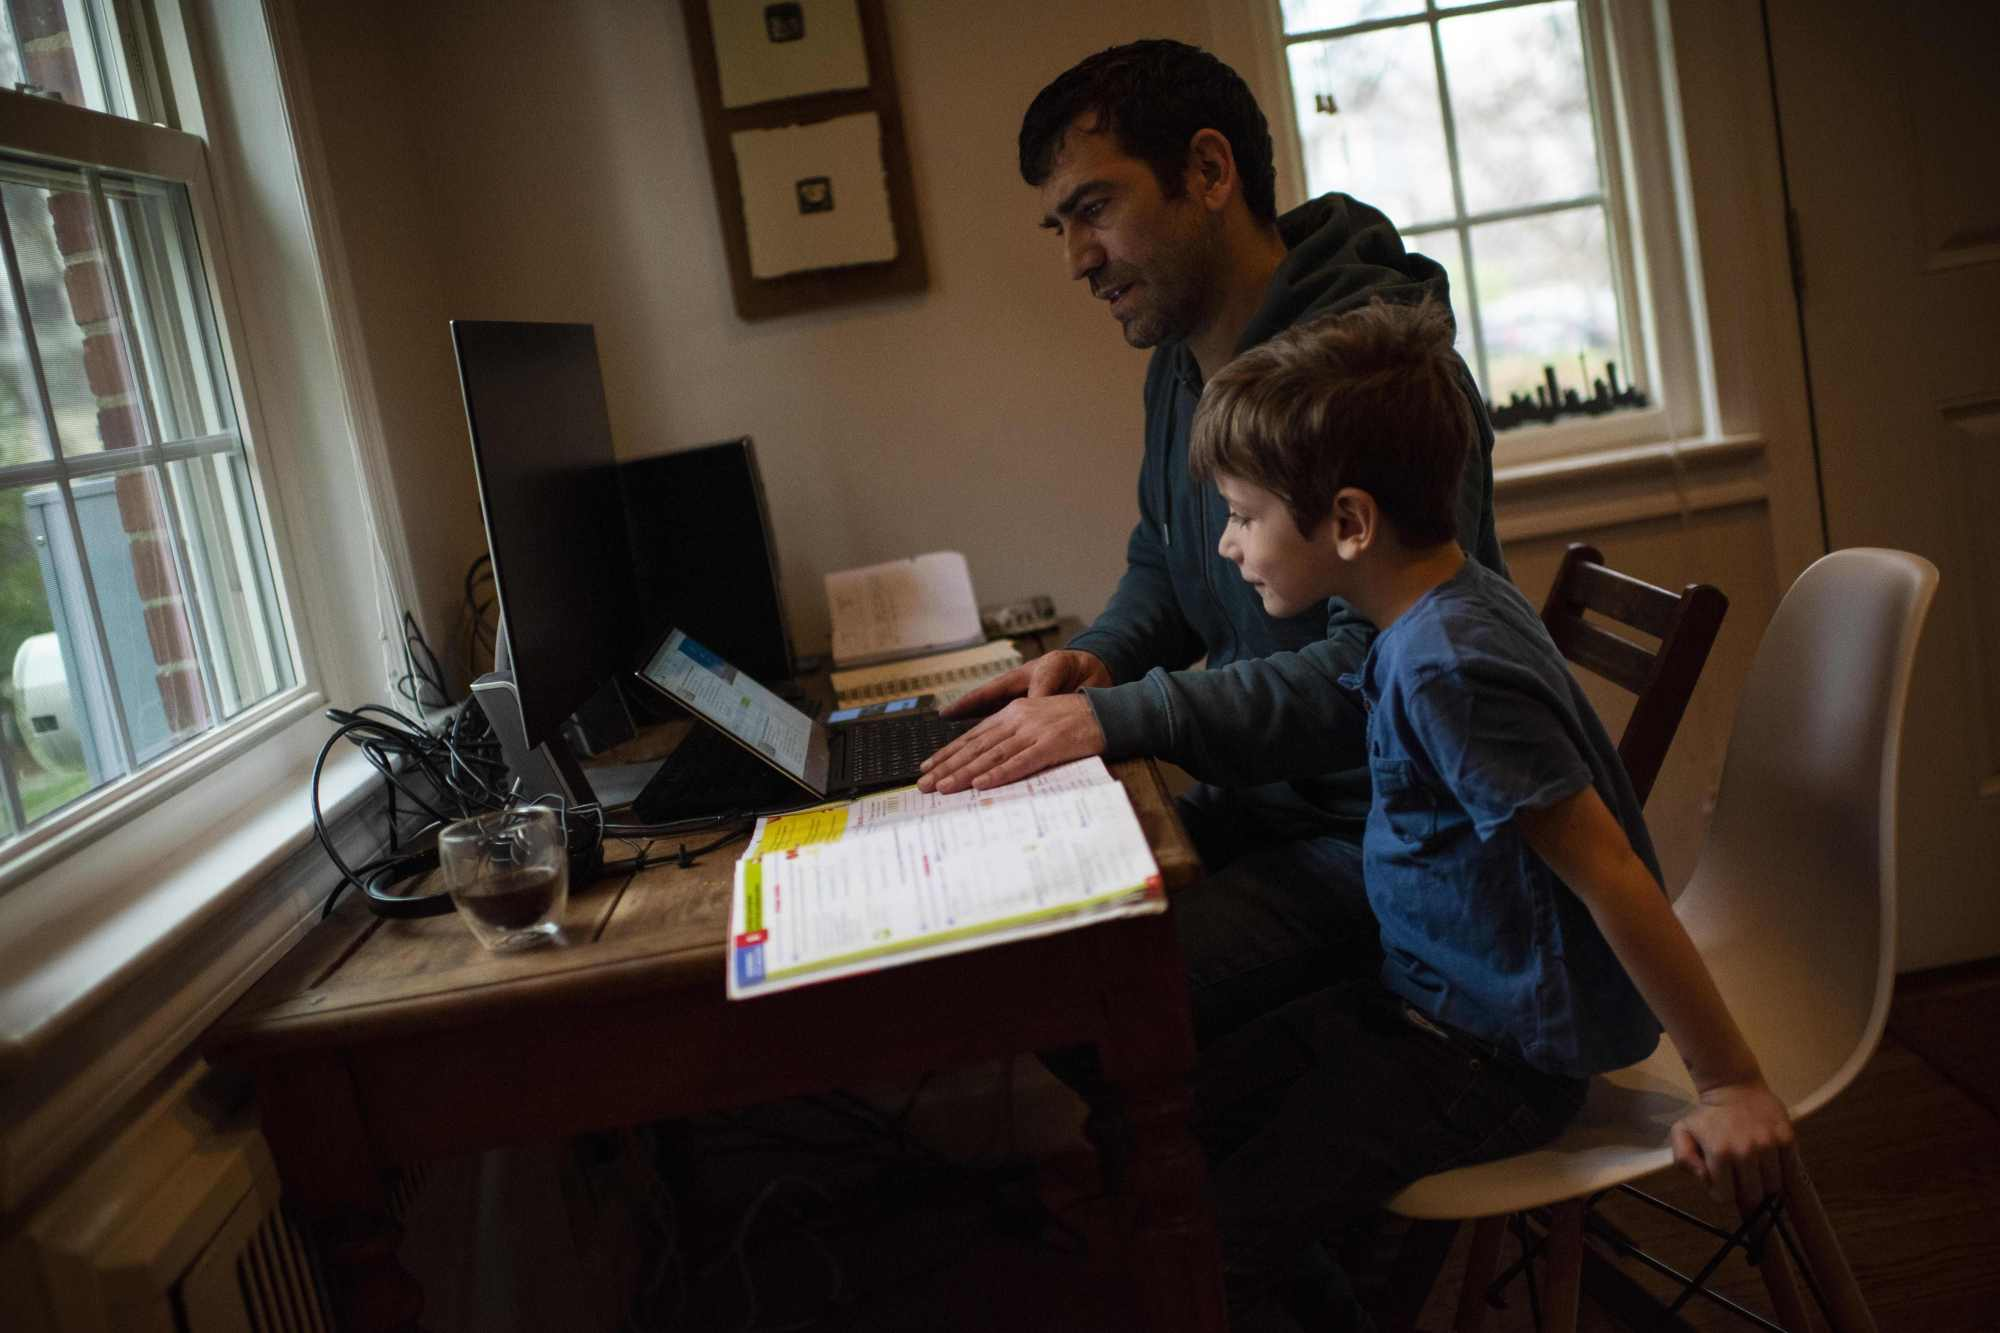 Joachim, 8, whose school was closed following the Coronavirus outbreak, does school exercises at home with his dad Pierre-Yves in Washington on March 20, 2020. (Eric Baradat/AFP via Getty Images)